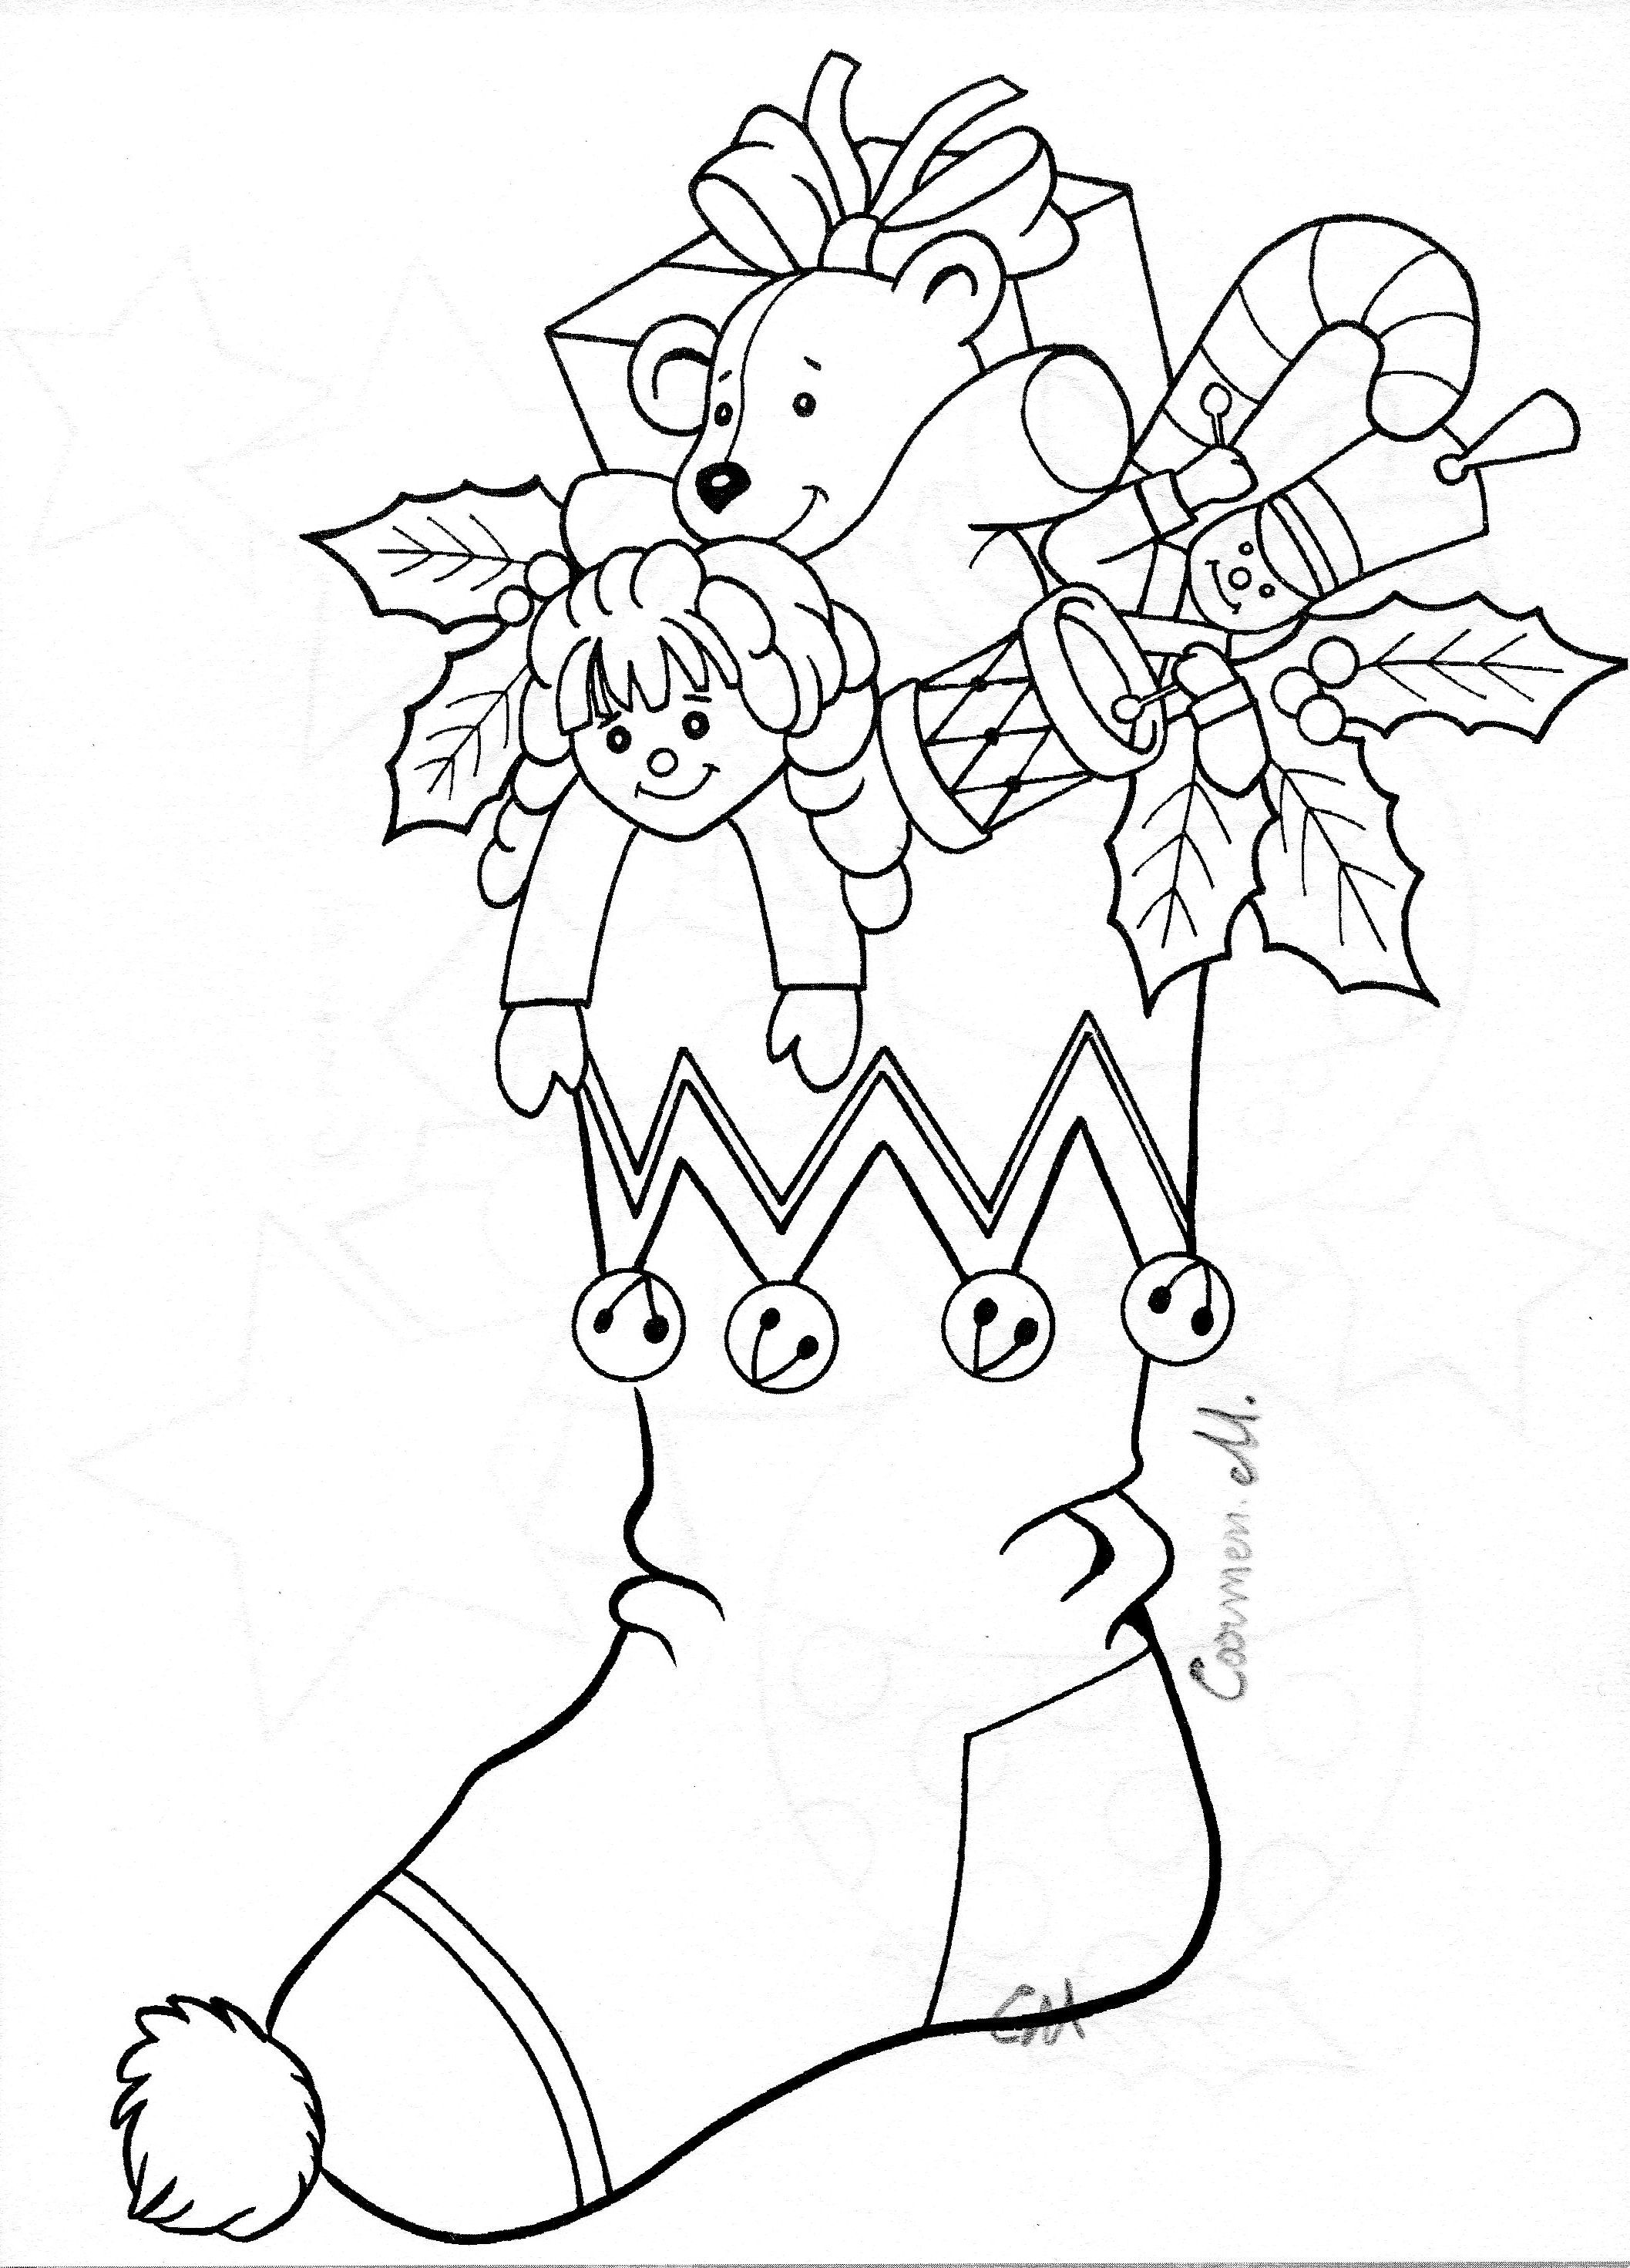 Christmas stocking colouring. | Christmas coloring pages ...